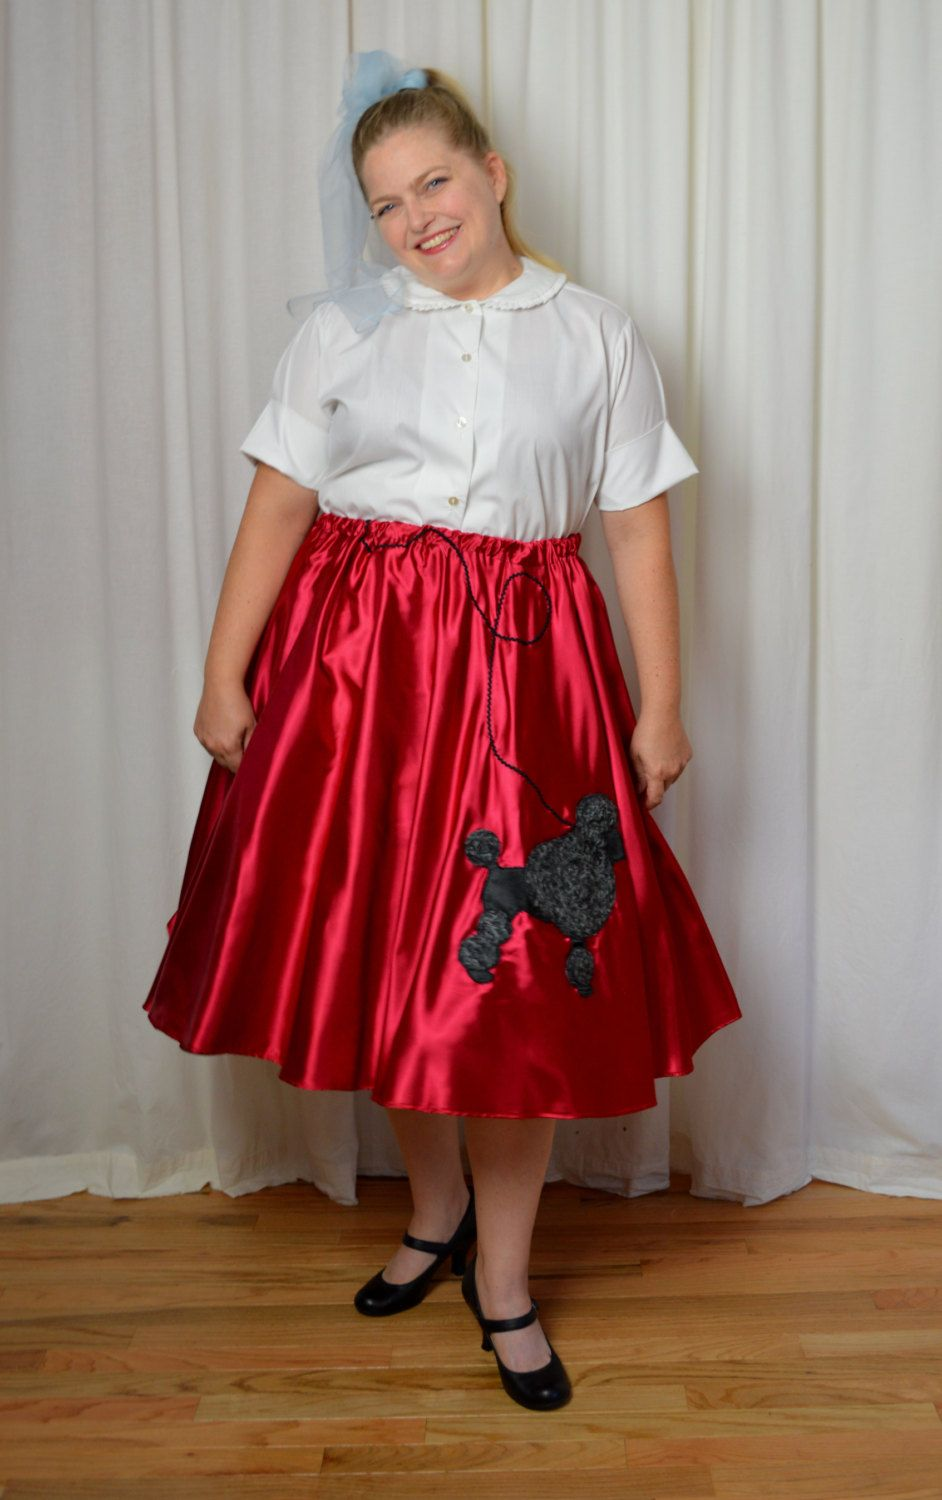 Red Poodle Skirt Costume Satin Plus Size Curvy